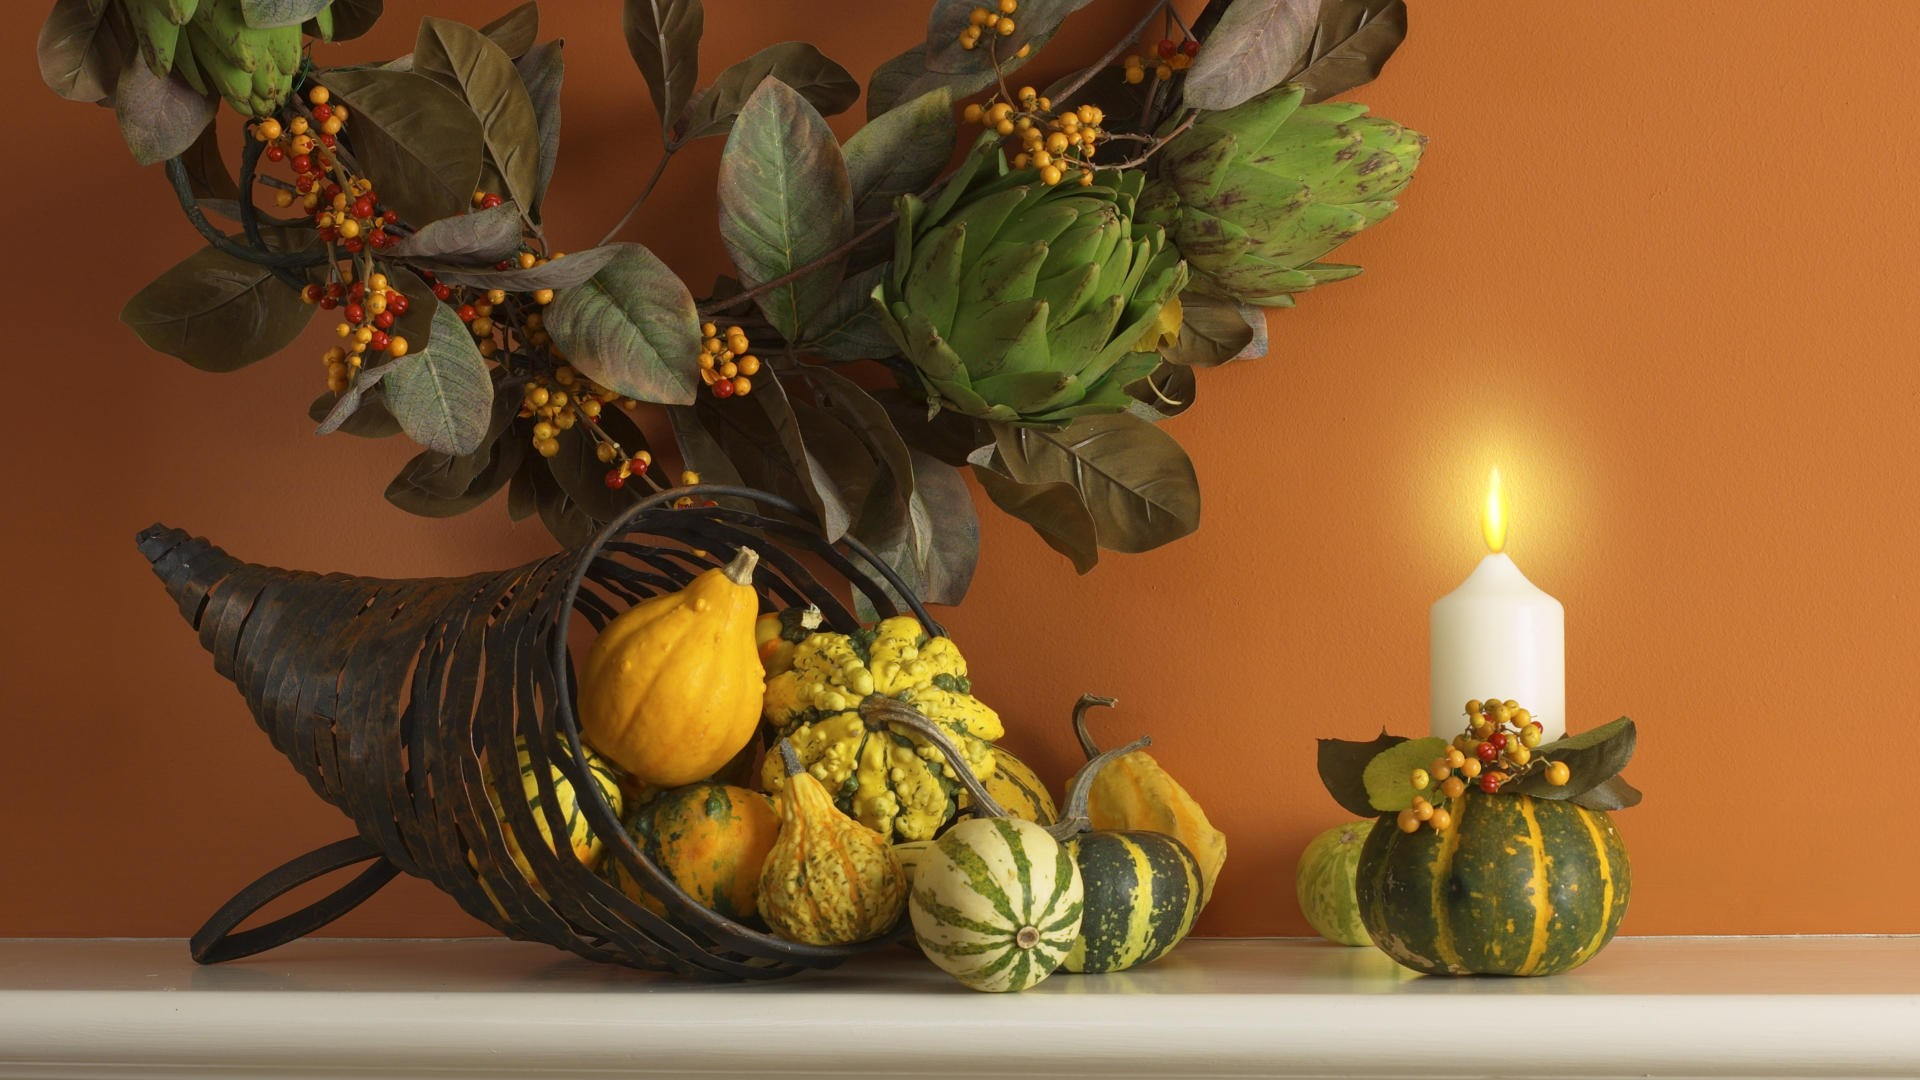 1920x1080 thanksgiving wallpaper: Thanksgiving Backgrounds, Pictures, Images